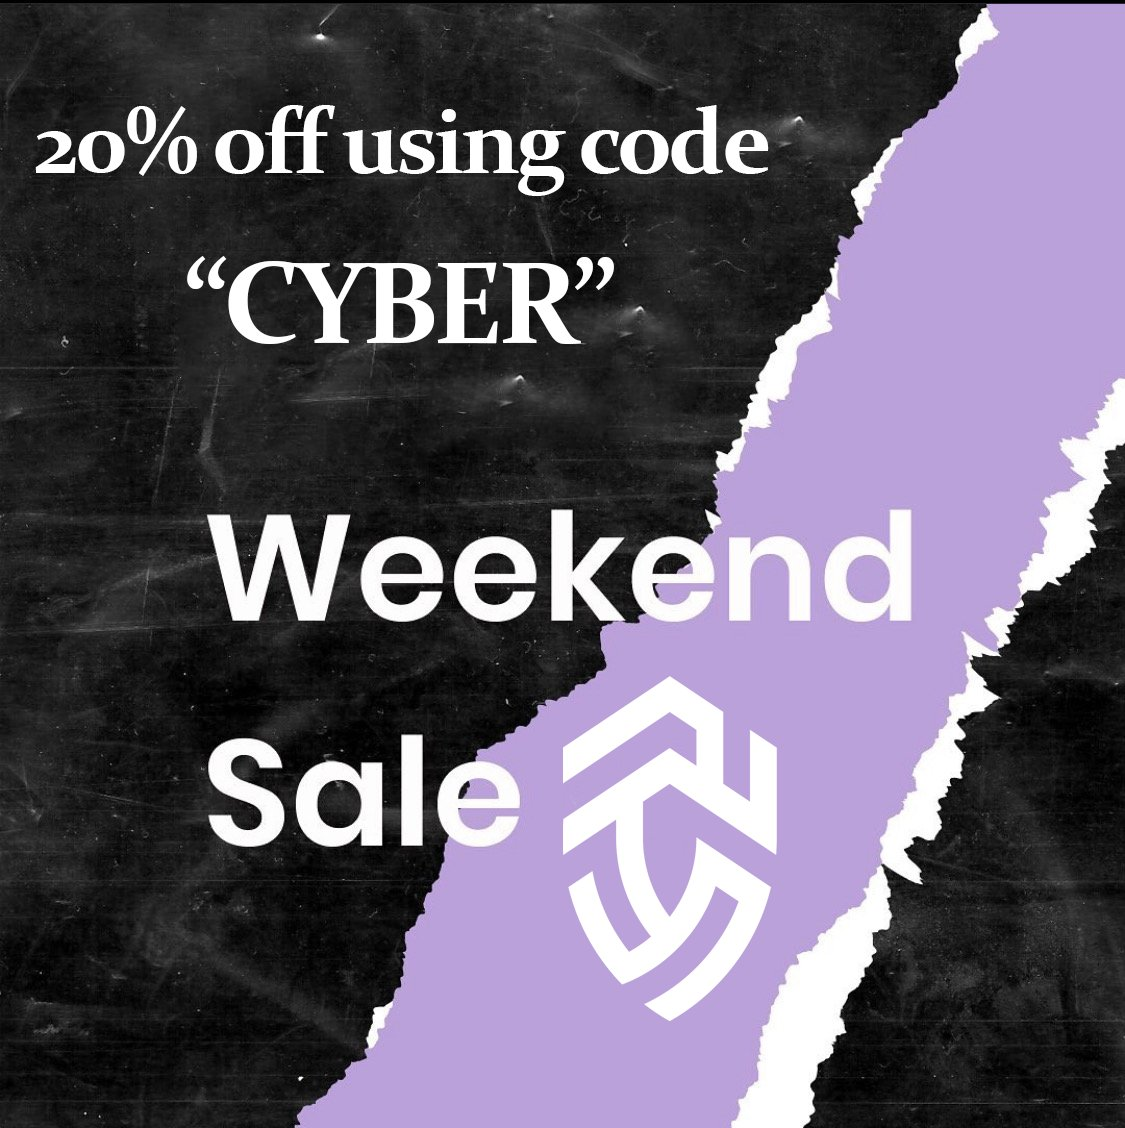 Co1azo - With Cyber Monday coming up all of my merch will be 20% off until Monday at 11:59PM! Check out the store and reply here letting me know what you picked up!